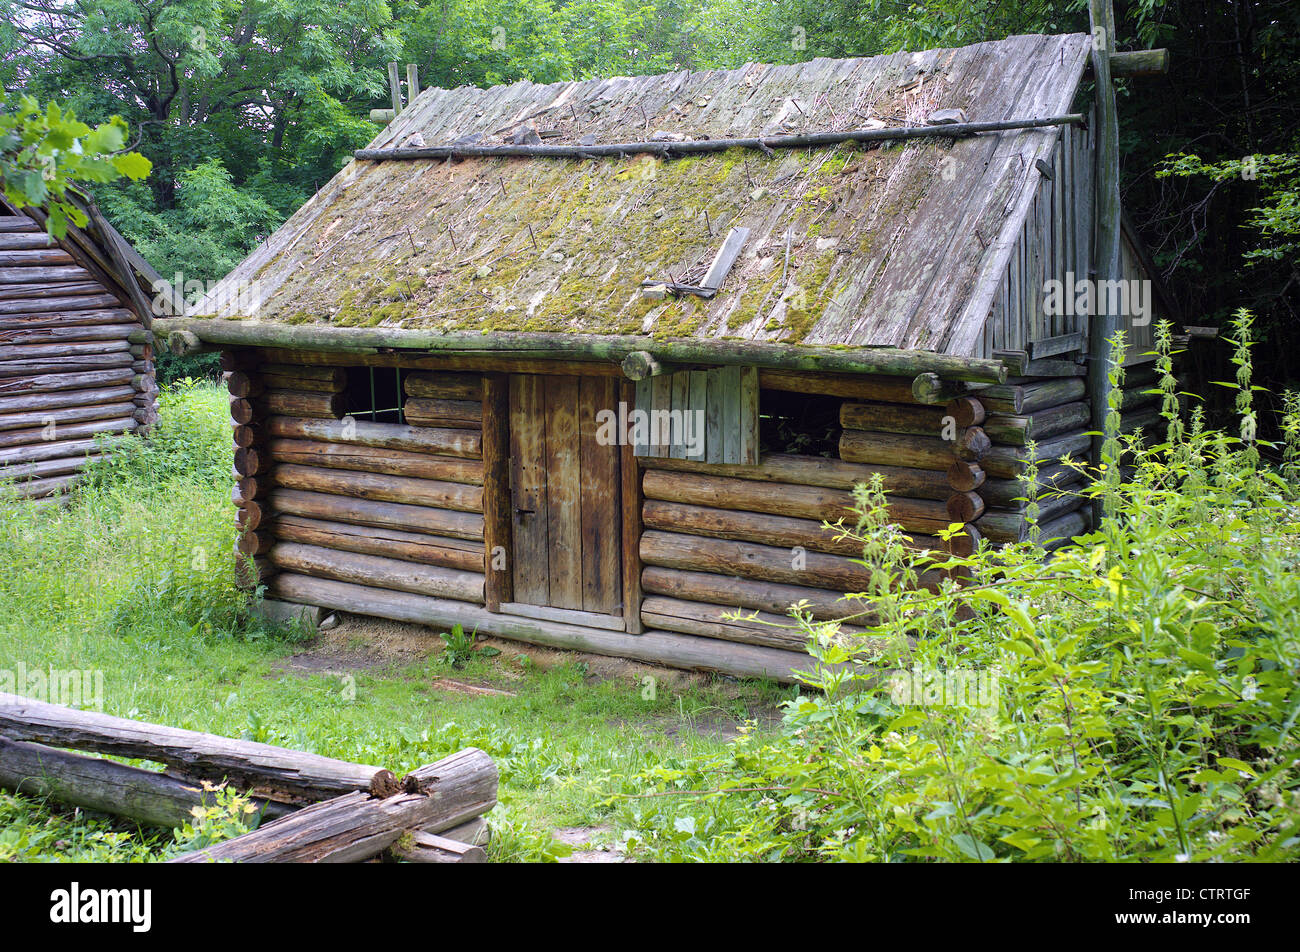 Wooden hut reconstruction Bedkowice ancient Slavic dwelling Lower Silesia Poland Stock Photo